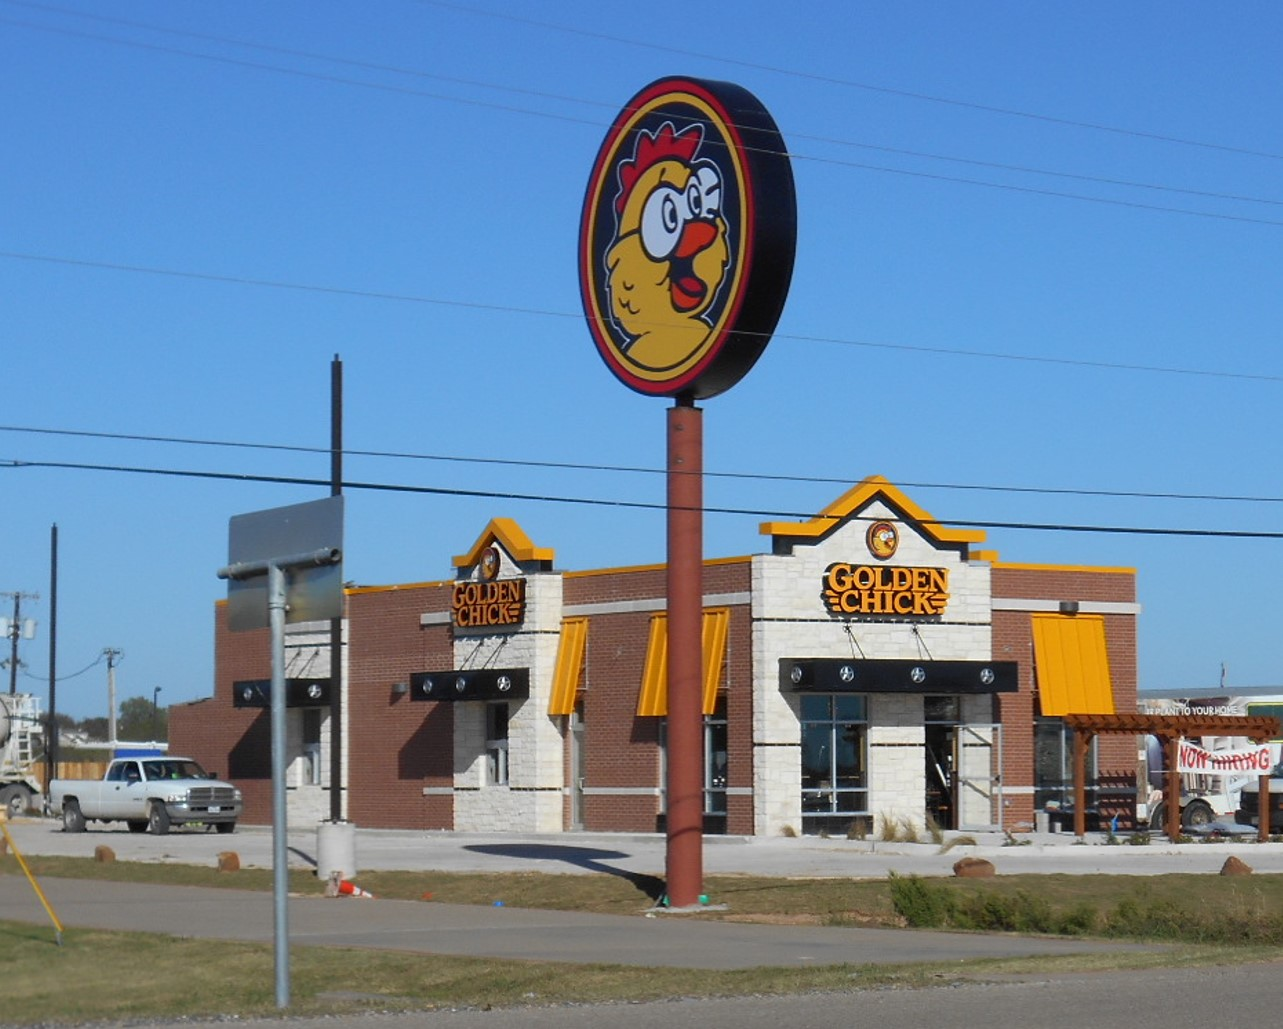 Golden Chick storefront.  Your local Golden Chick fast food restaurant in Bellmead, Texas